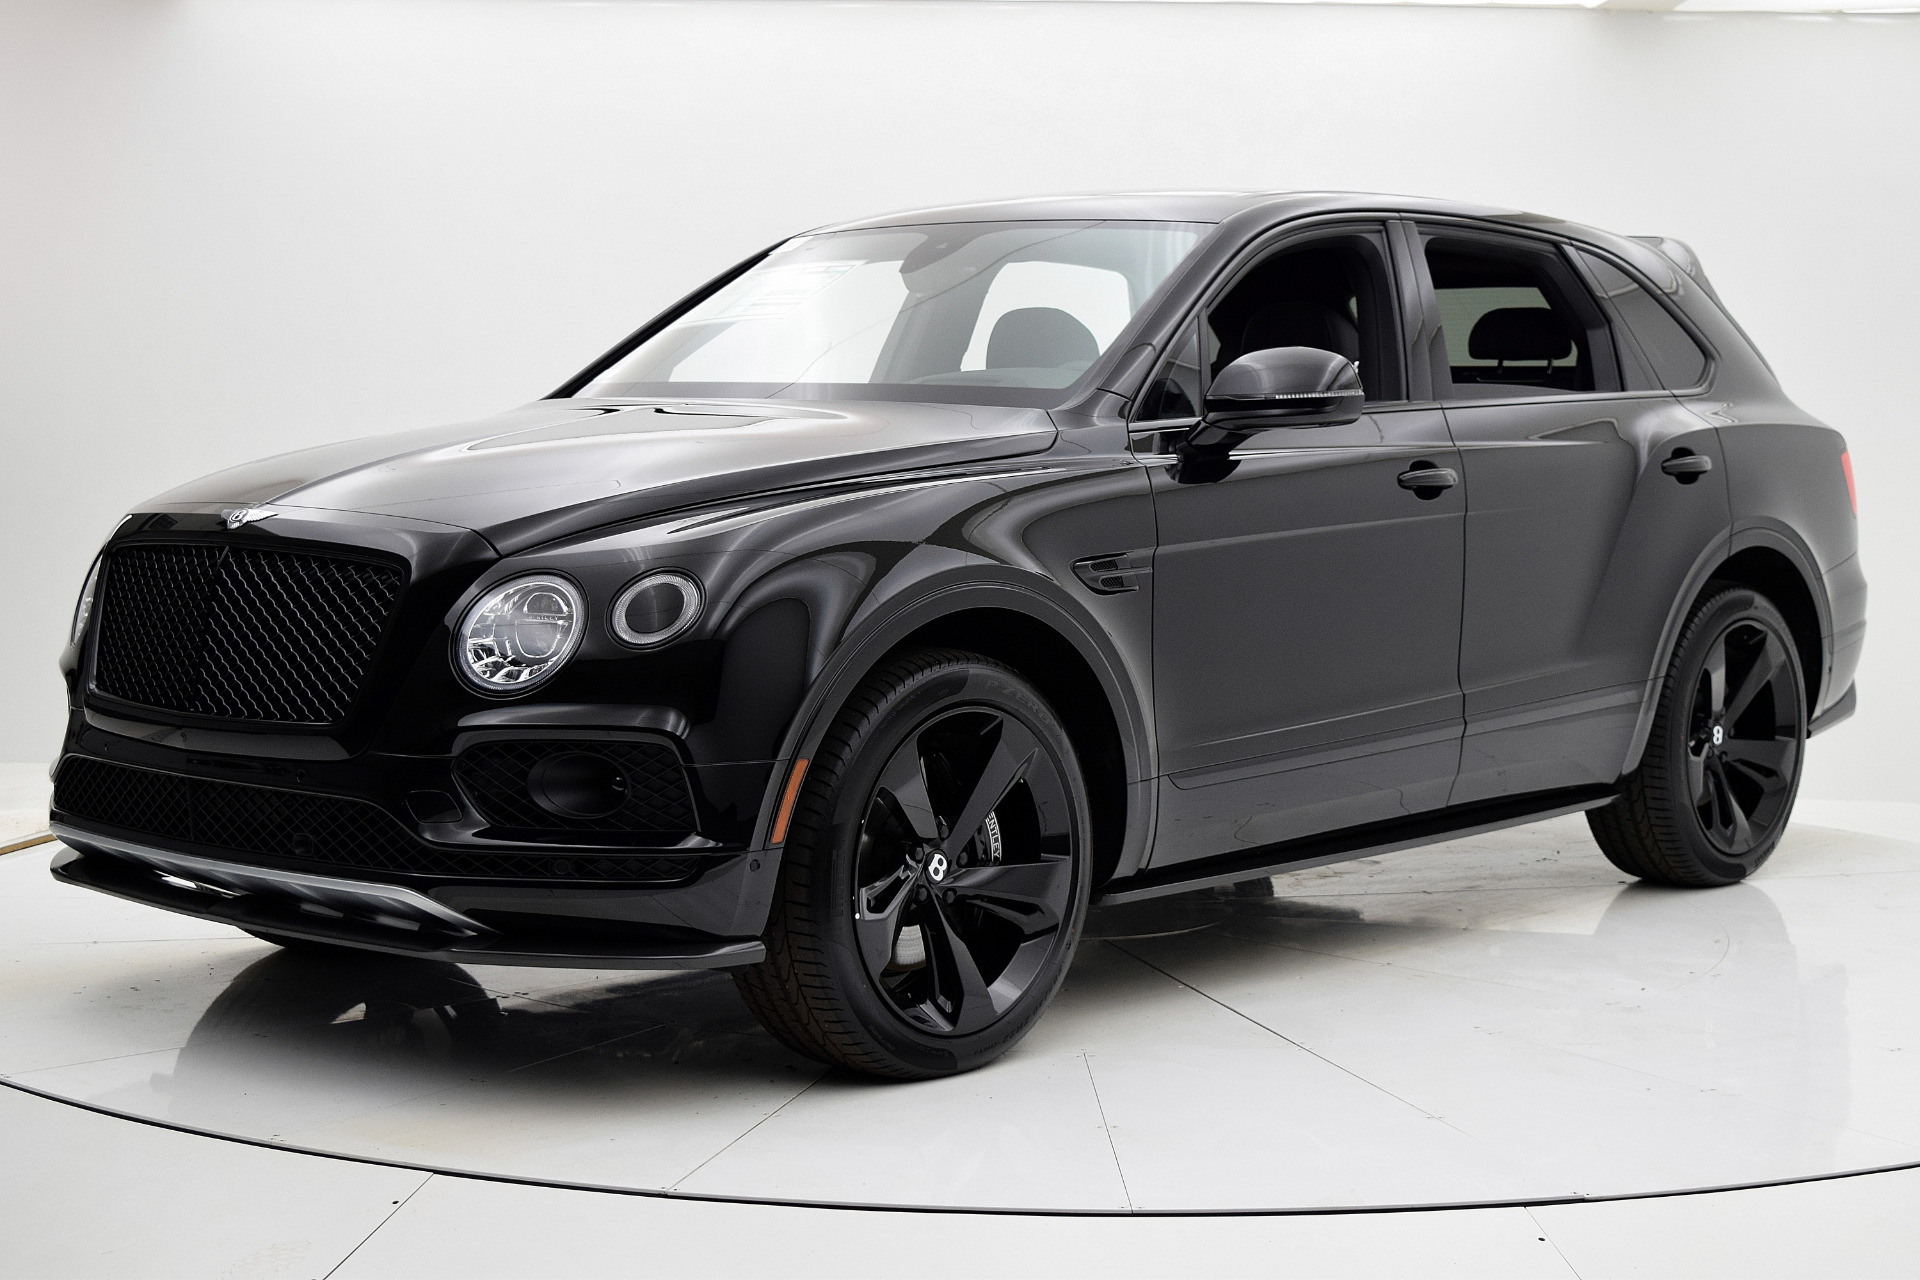 Used 2018 Bentley Bentayga Black Edition for sale Sold at Bentley Palmyra N.J. in Palmyra NJ 08065 2